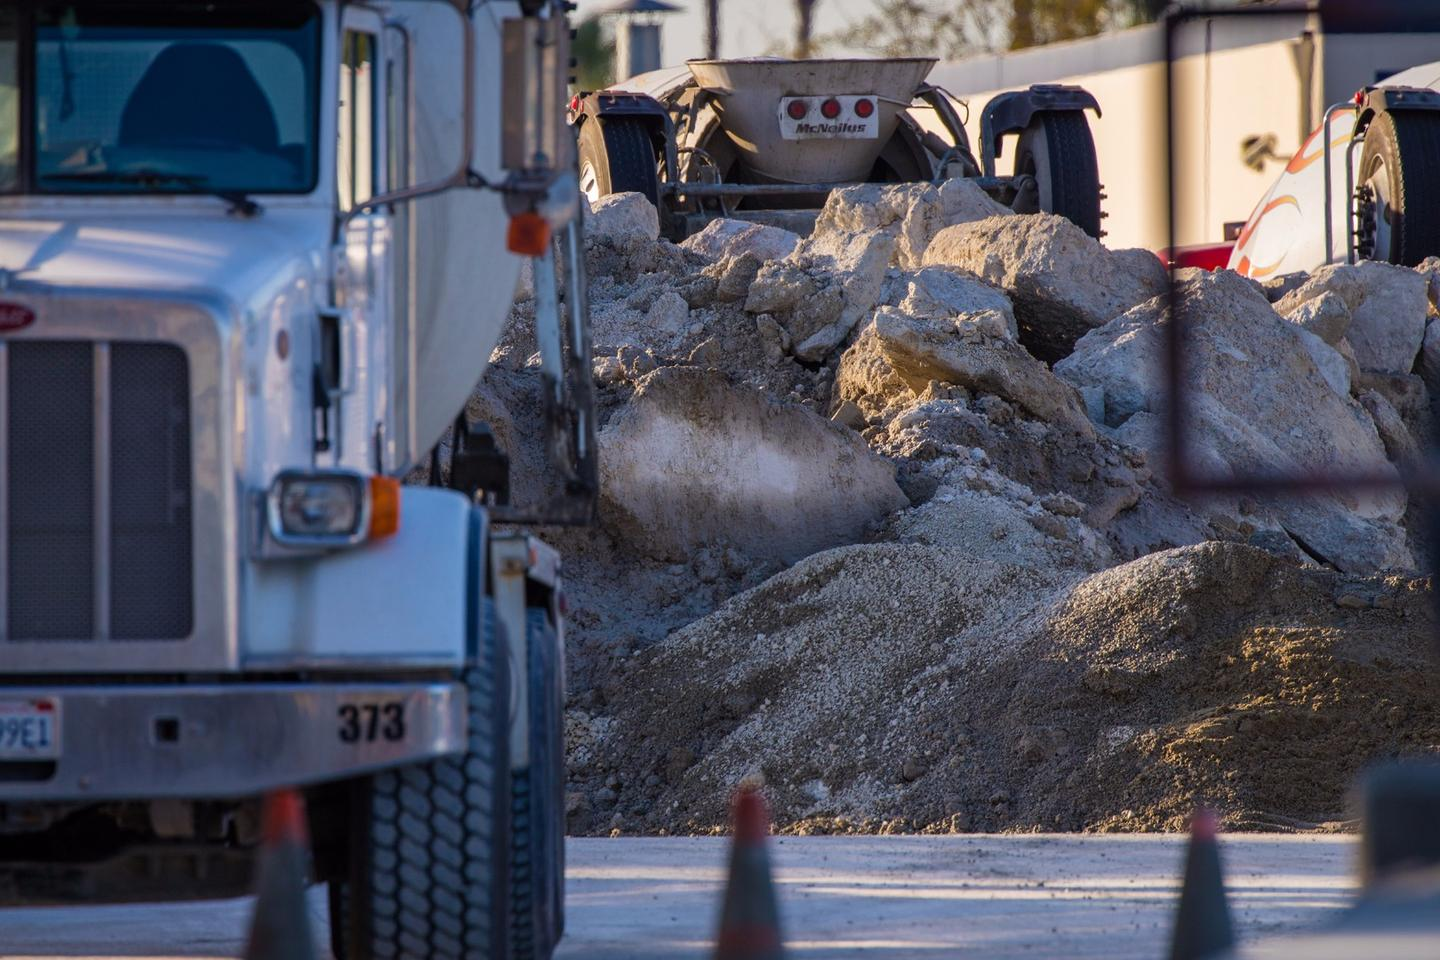 Believe it or not, the concrete rubble you see on the road is actually helping to clean up the air